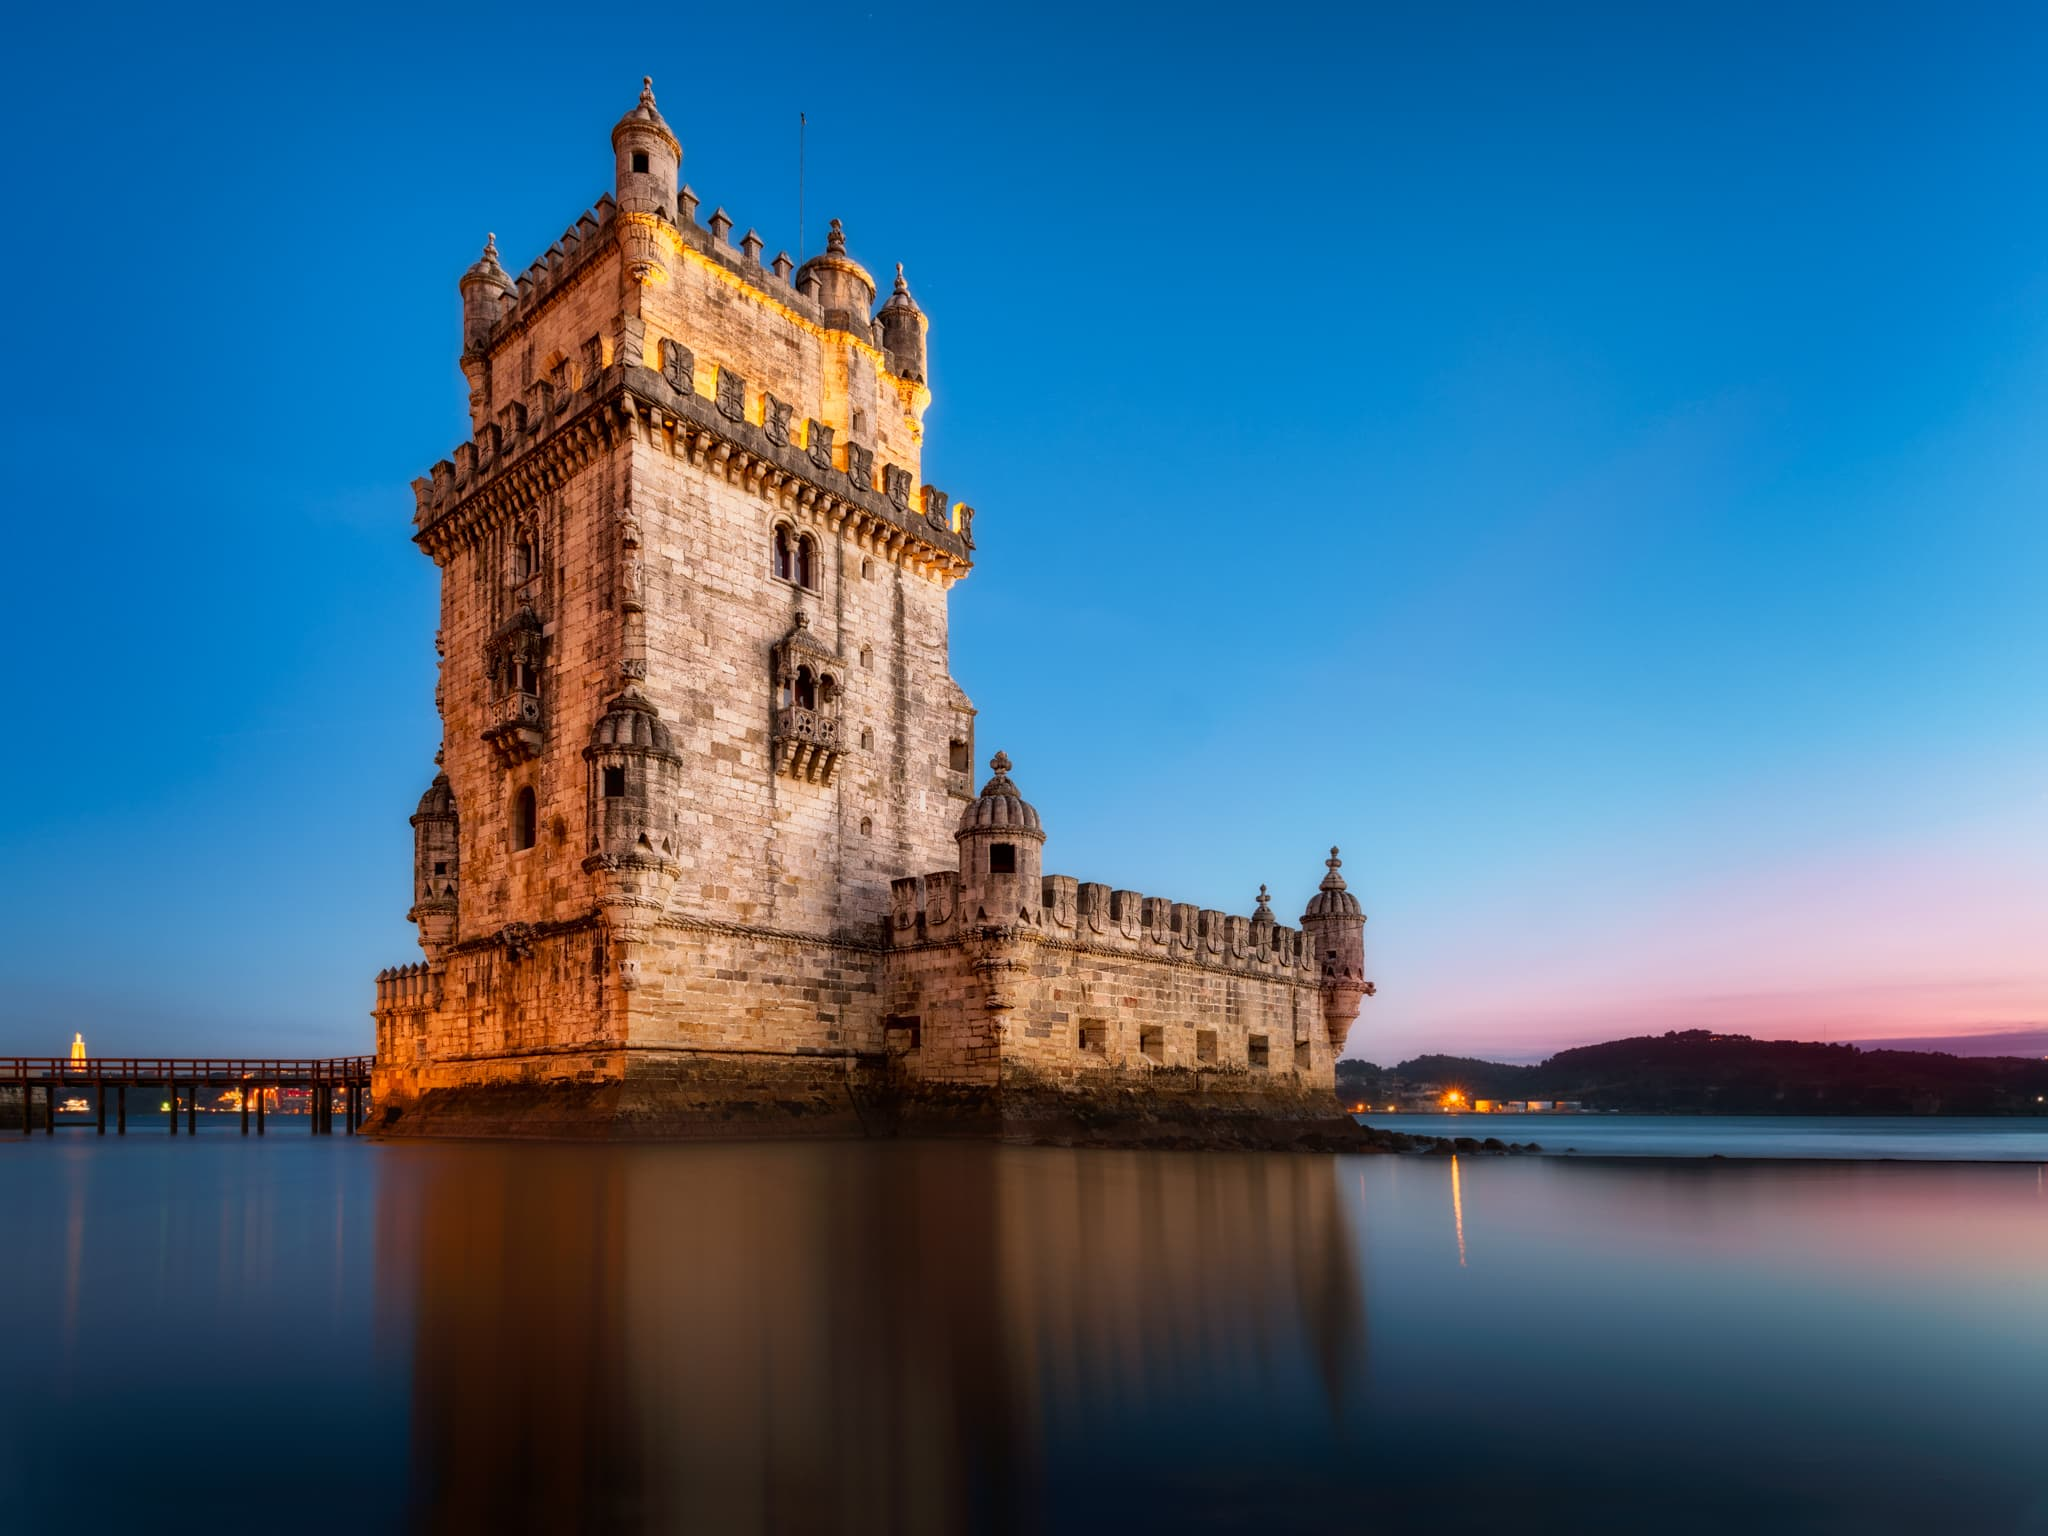 Belem Tower | Lisbon, Portugal